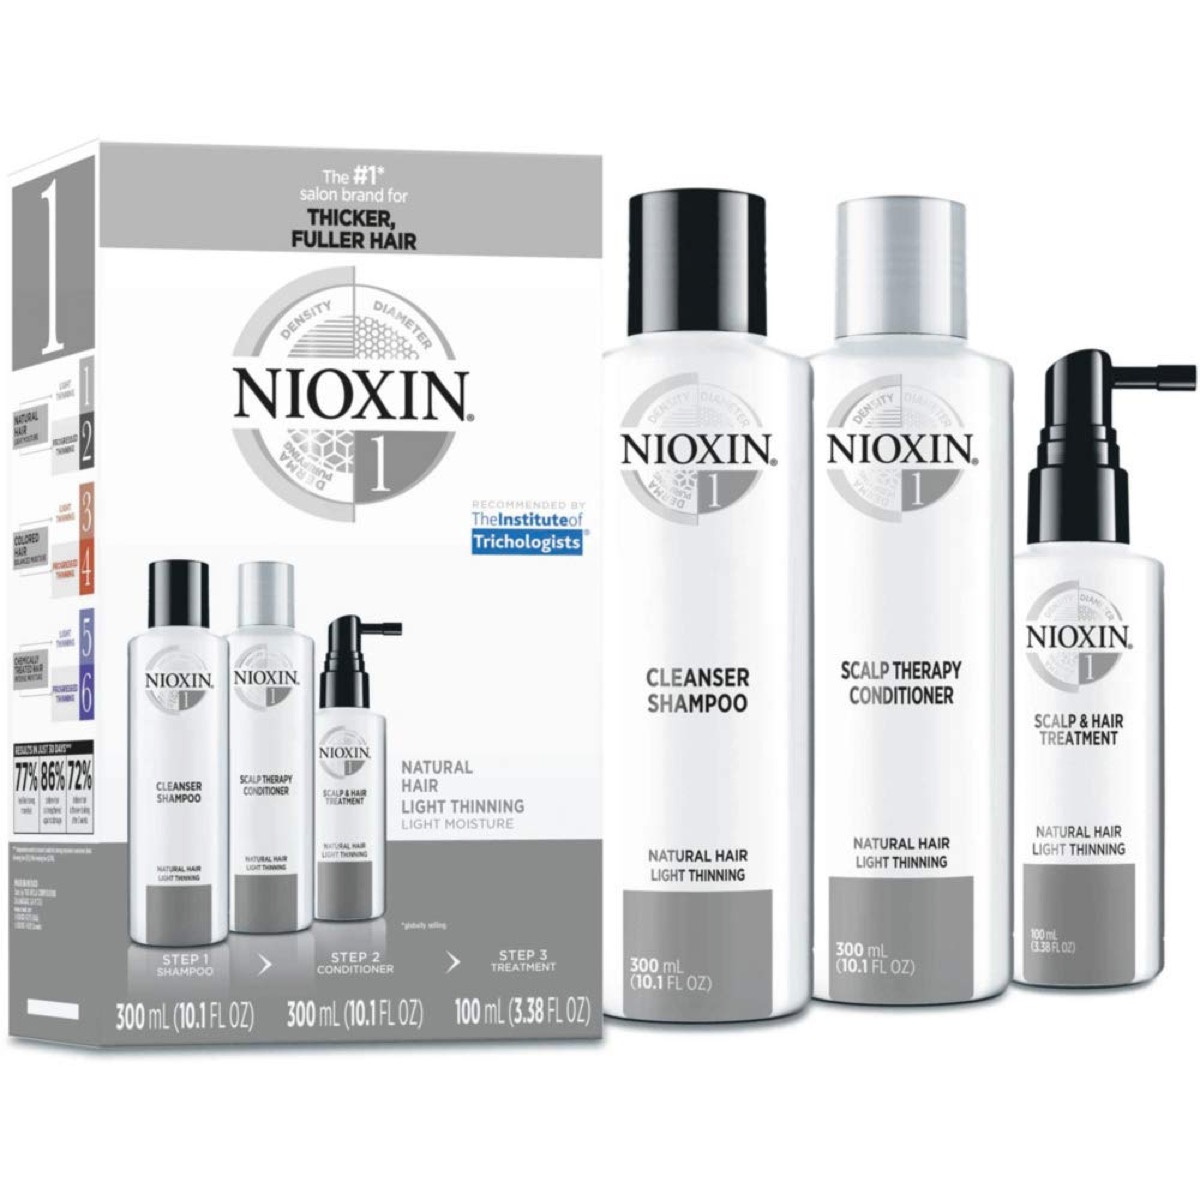 nioxin set of shampoos and products